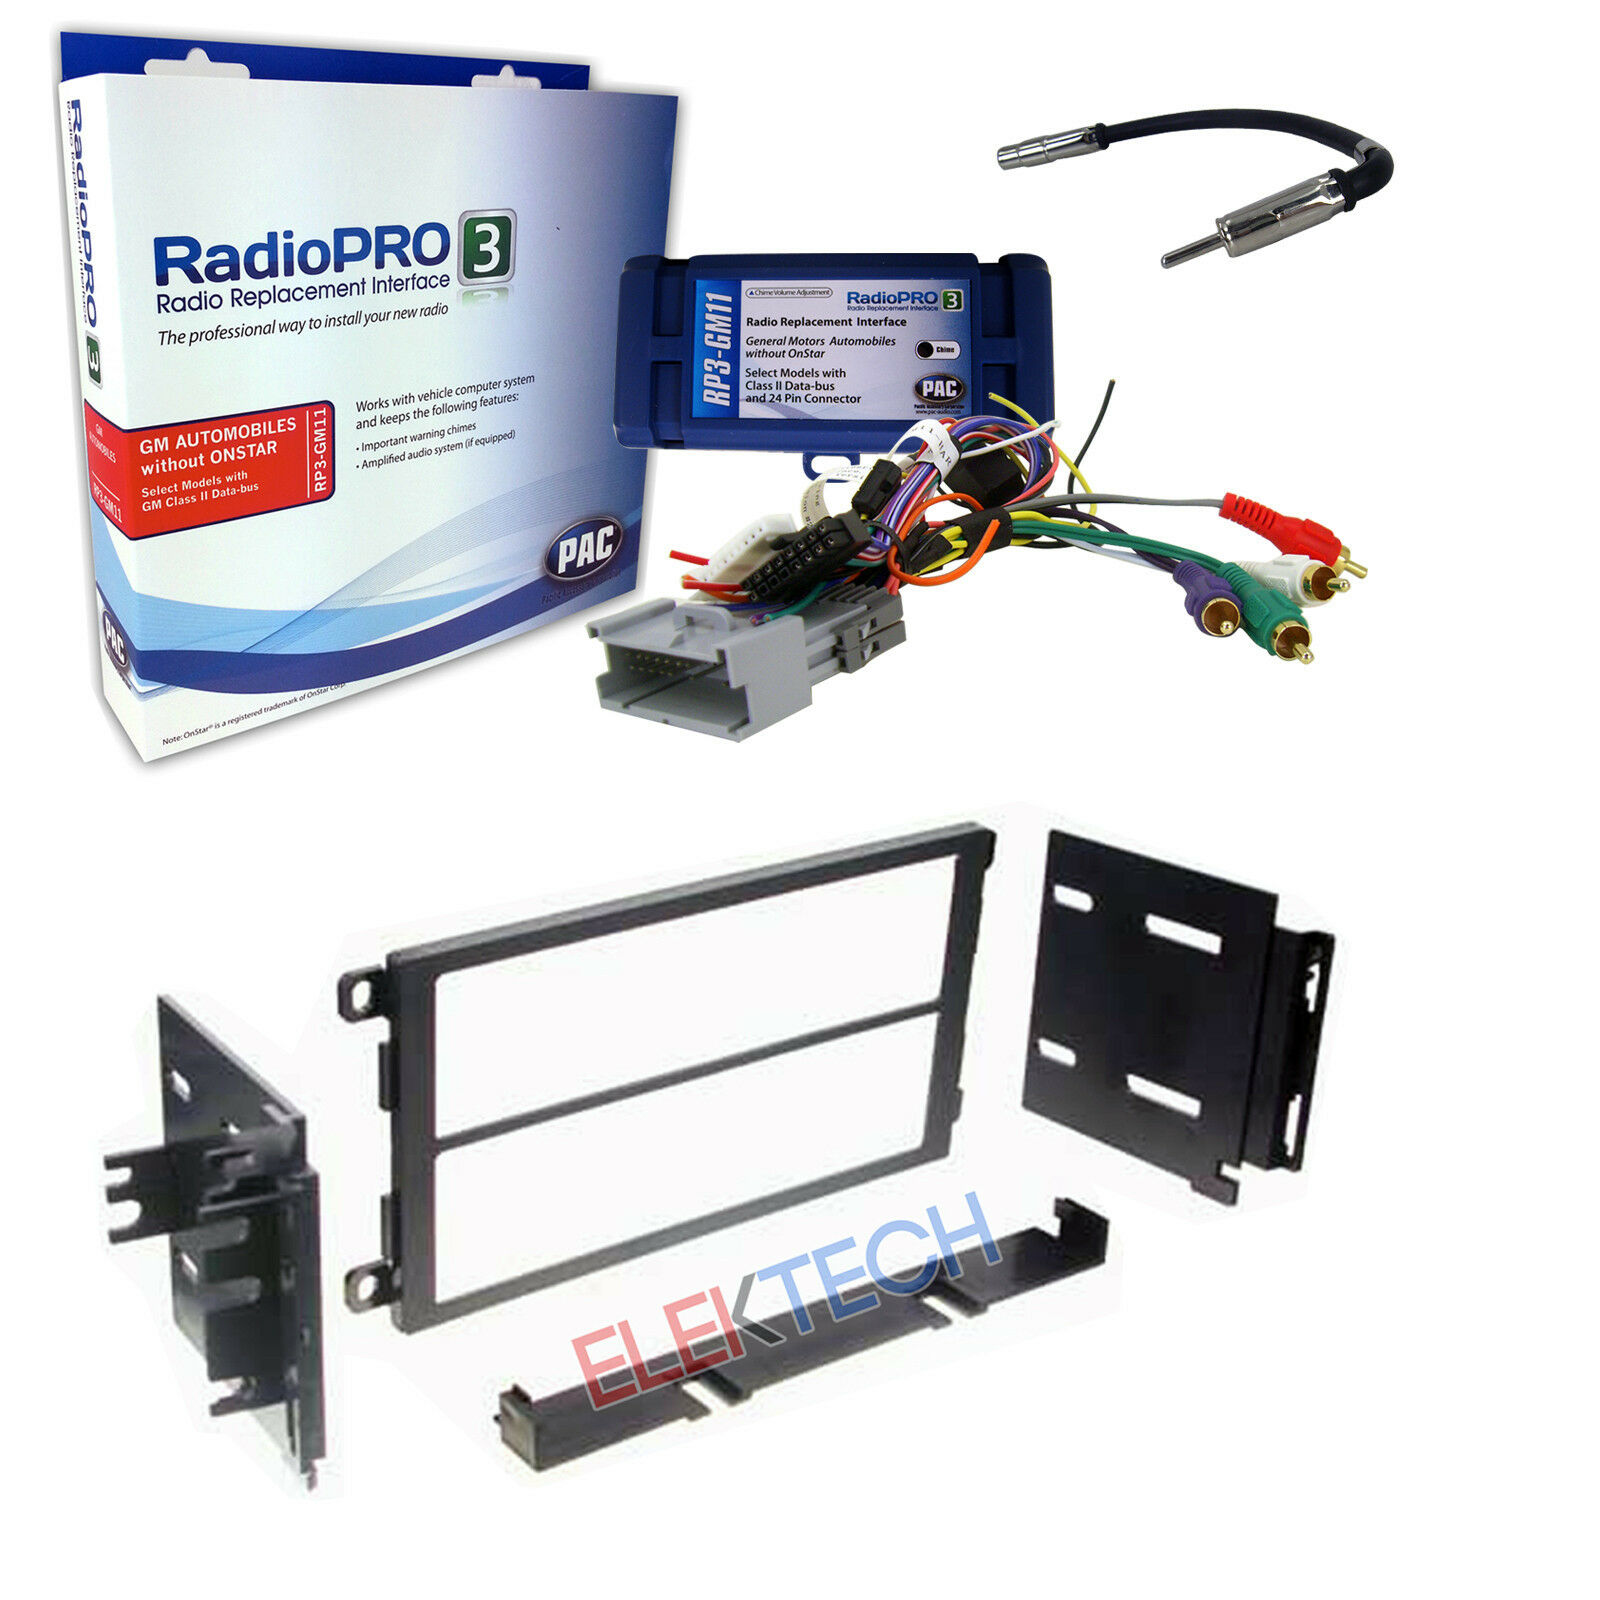 Radio Replacement Interface Car Dash Install Kit radio replacement interface & car dash install kit for no onstar gmc